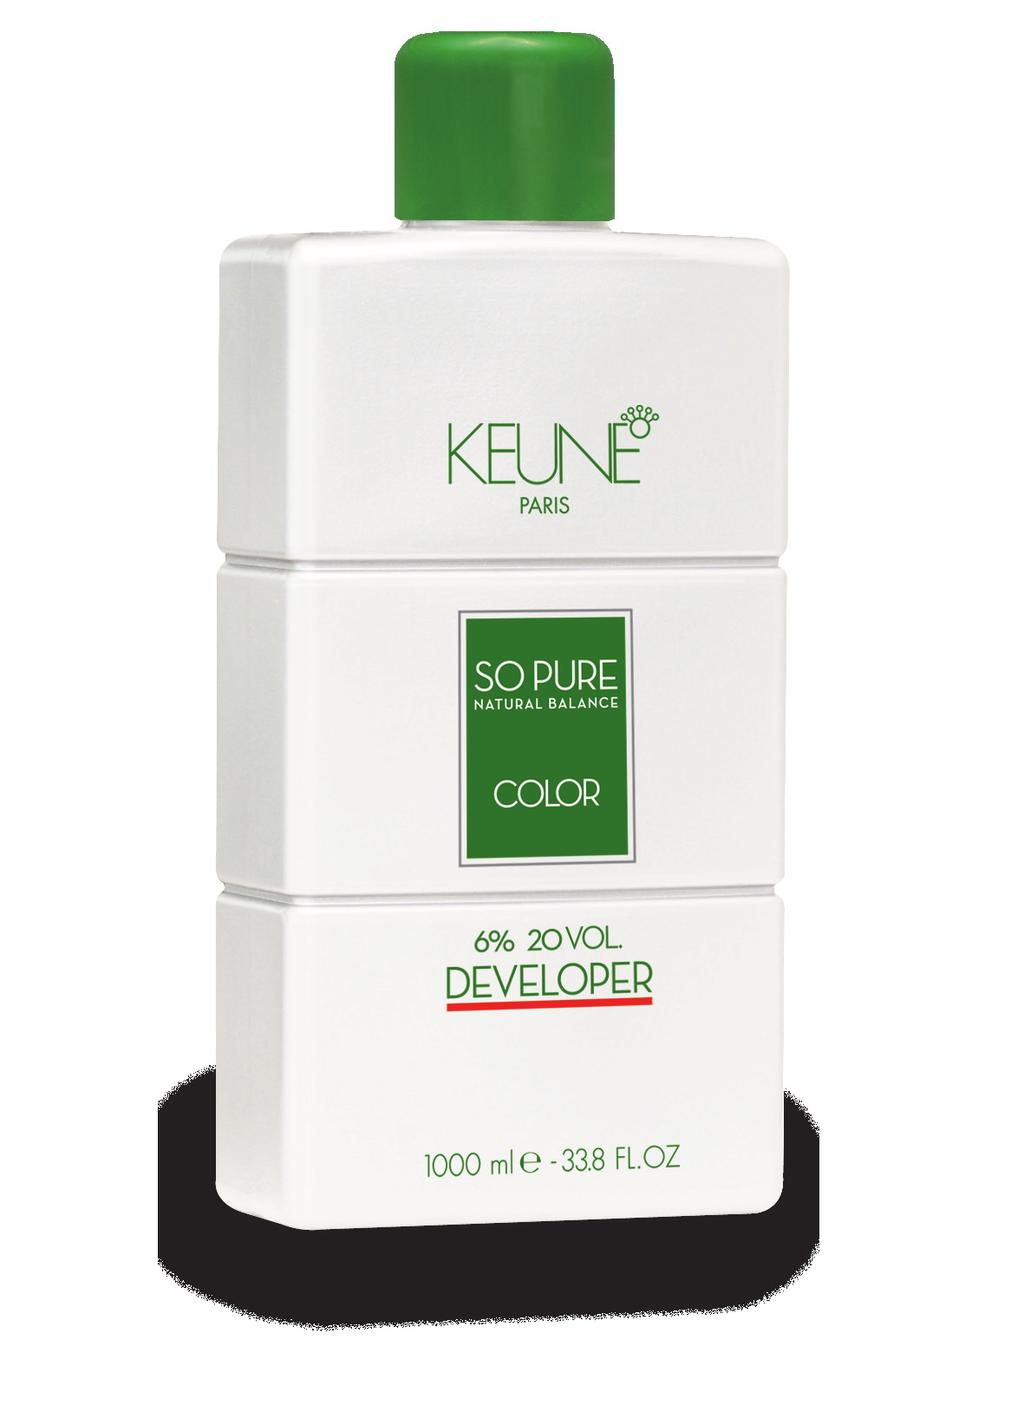 4.2 So Pure Color Developer The So Pure Color Developer is a paraben free developer, enriched with a color stabilizer.